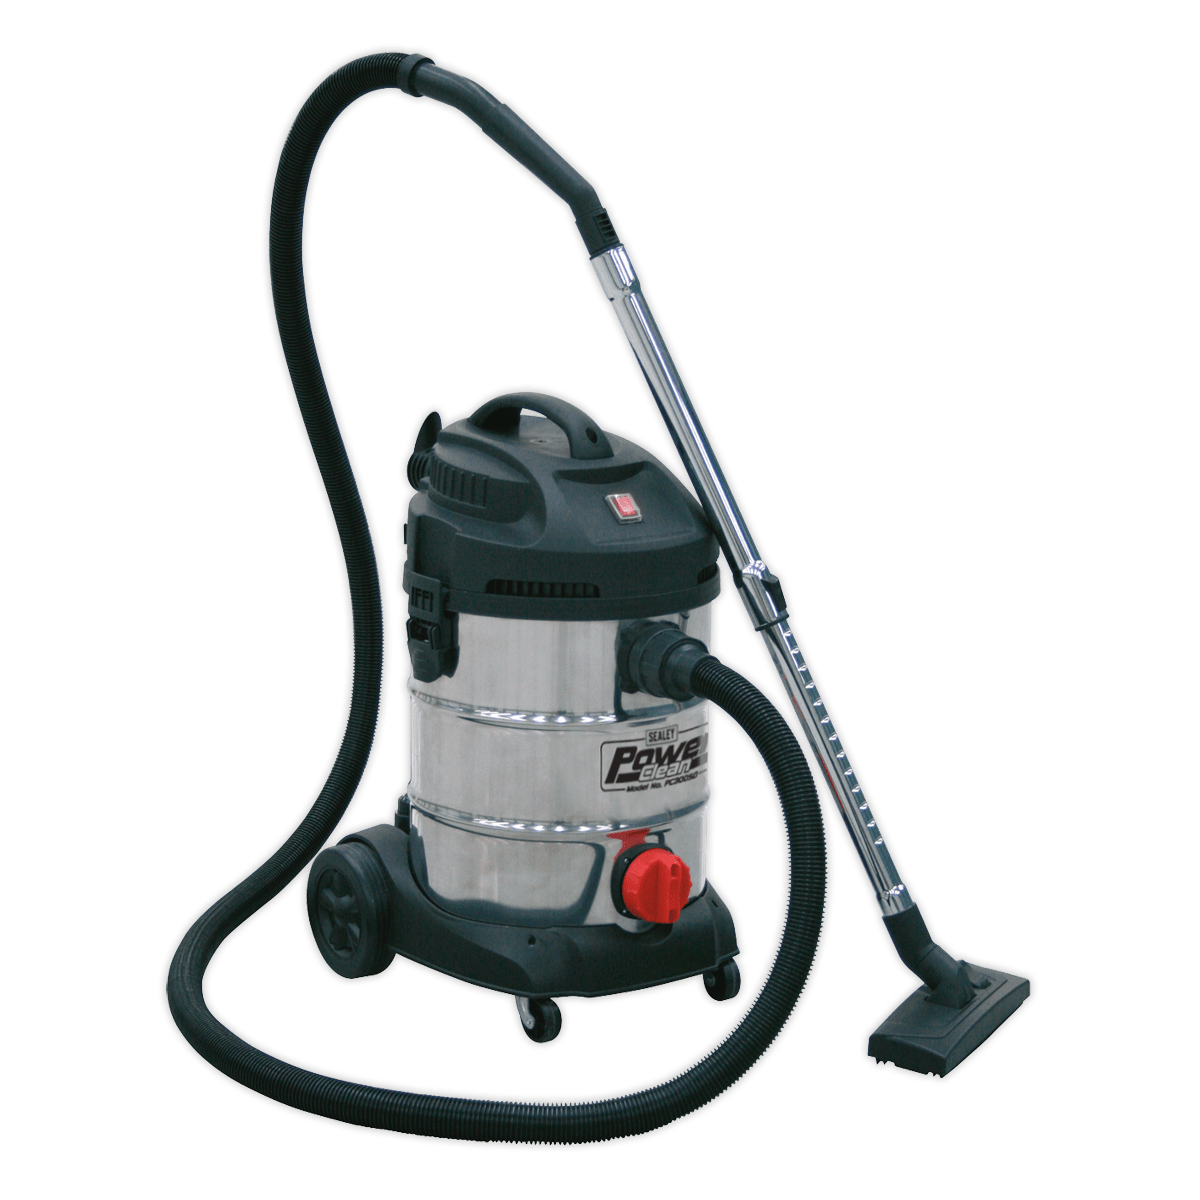 Sealey Vacuum Cleaner Industrial 30L 1400W/230V Stainless Drum PC300SD | High powered, lightweight industrial unit with blower facility. | toolforce.ie